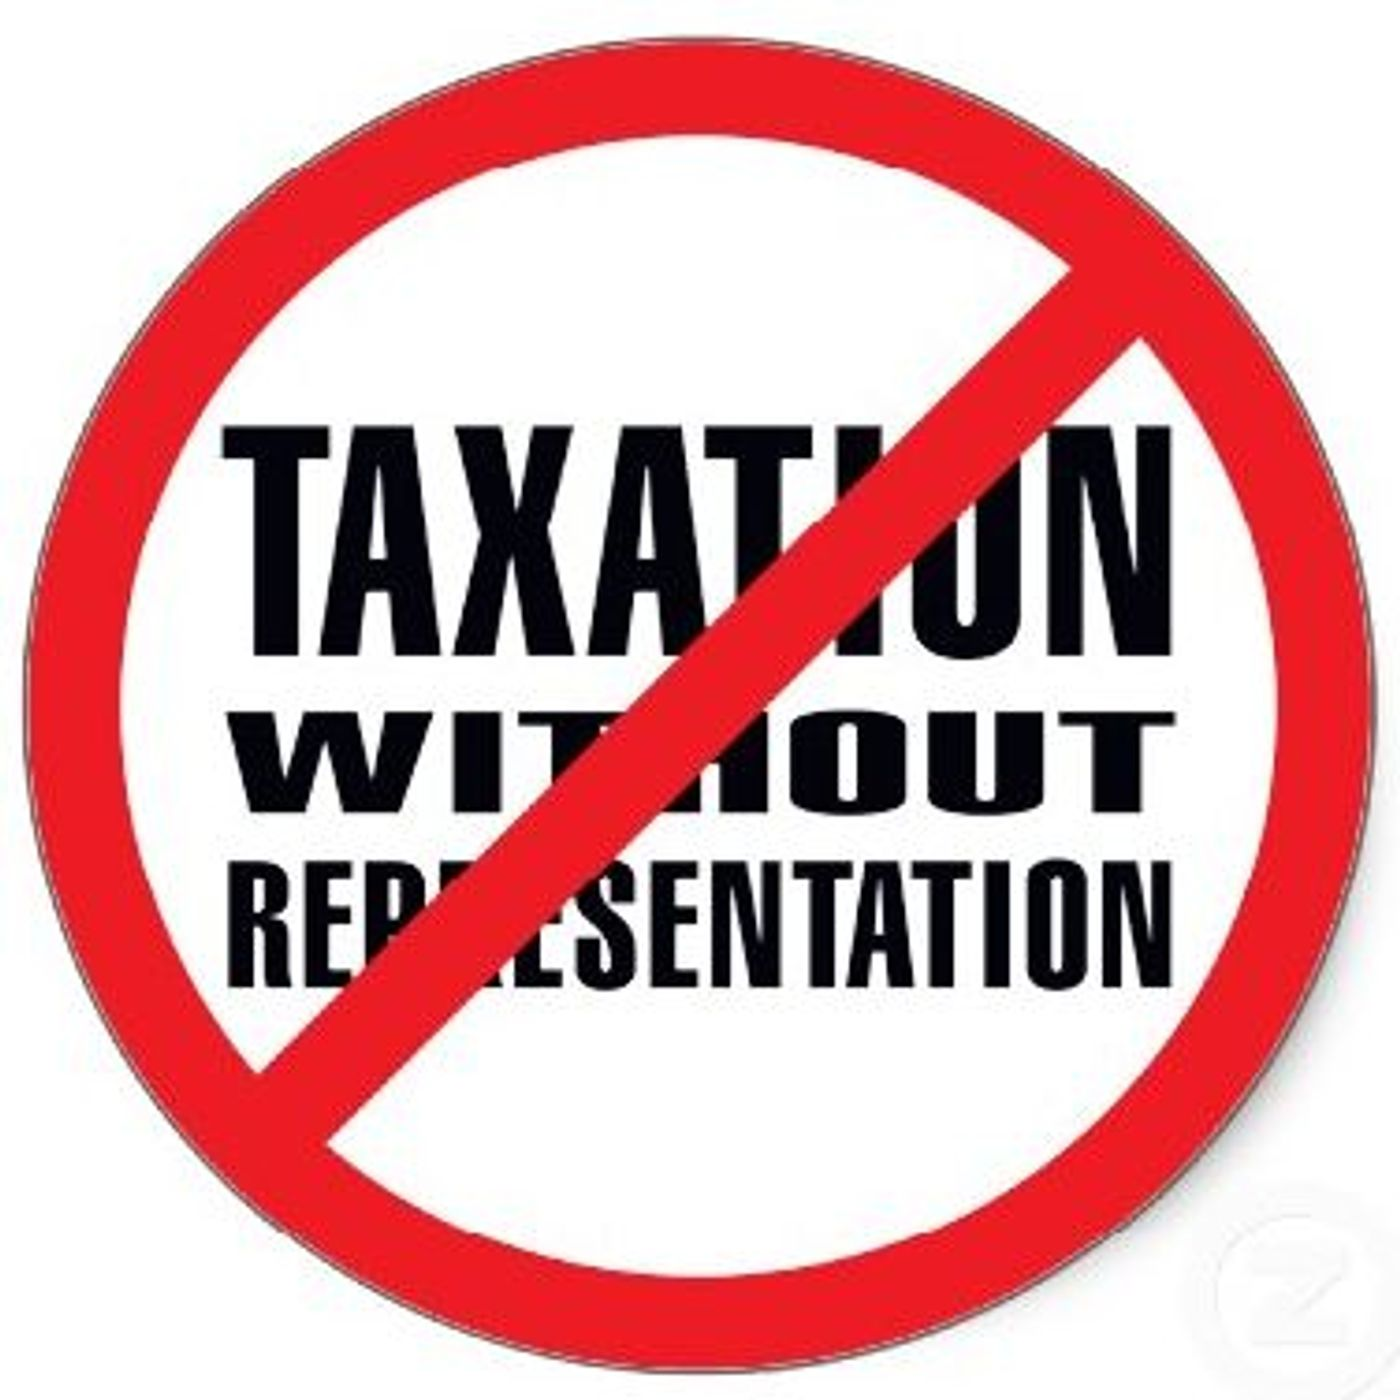 Episode 19: No Taxation Without Representation